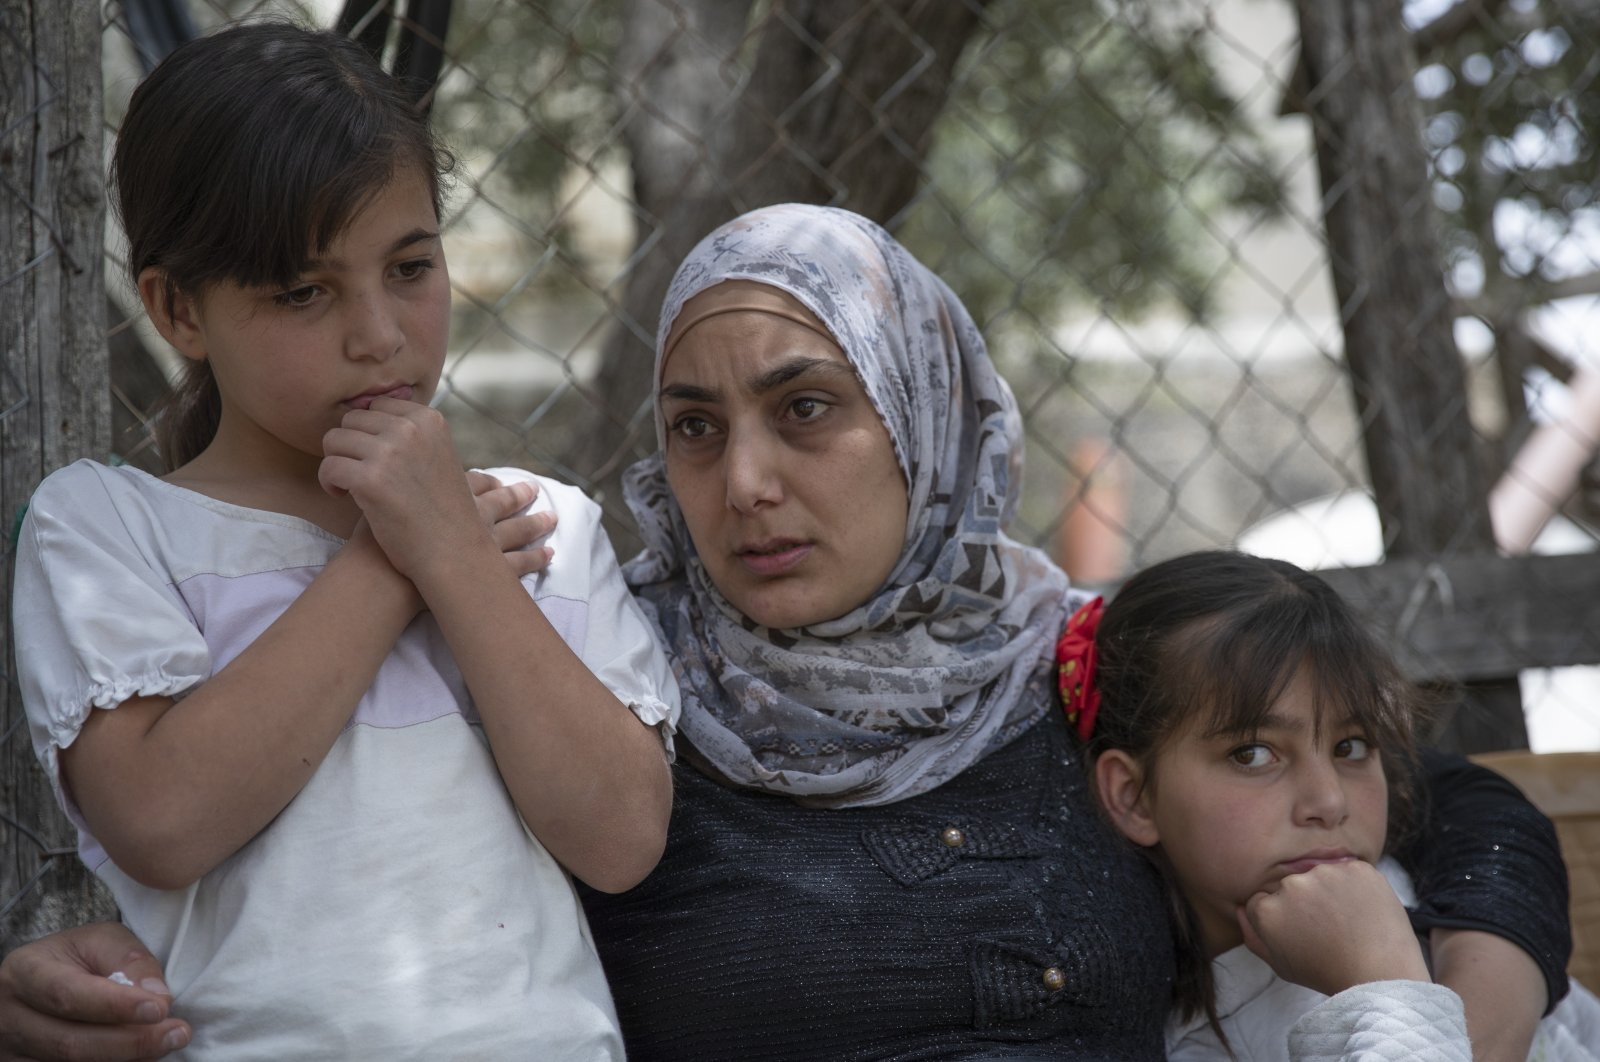 Somaya, the wife of Palestinian Osama Mansour, who was shot to death by Israeli soldiers at a temporary checkpoint in the occupied West Bank earlier this month, holds their 10 year-old twins Nissan, left and Bissan, right, at their family house, in the West Bank village of Biddu, west of Ramallah, Tuesday, April 20, 2021. (AP Photo)